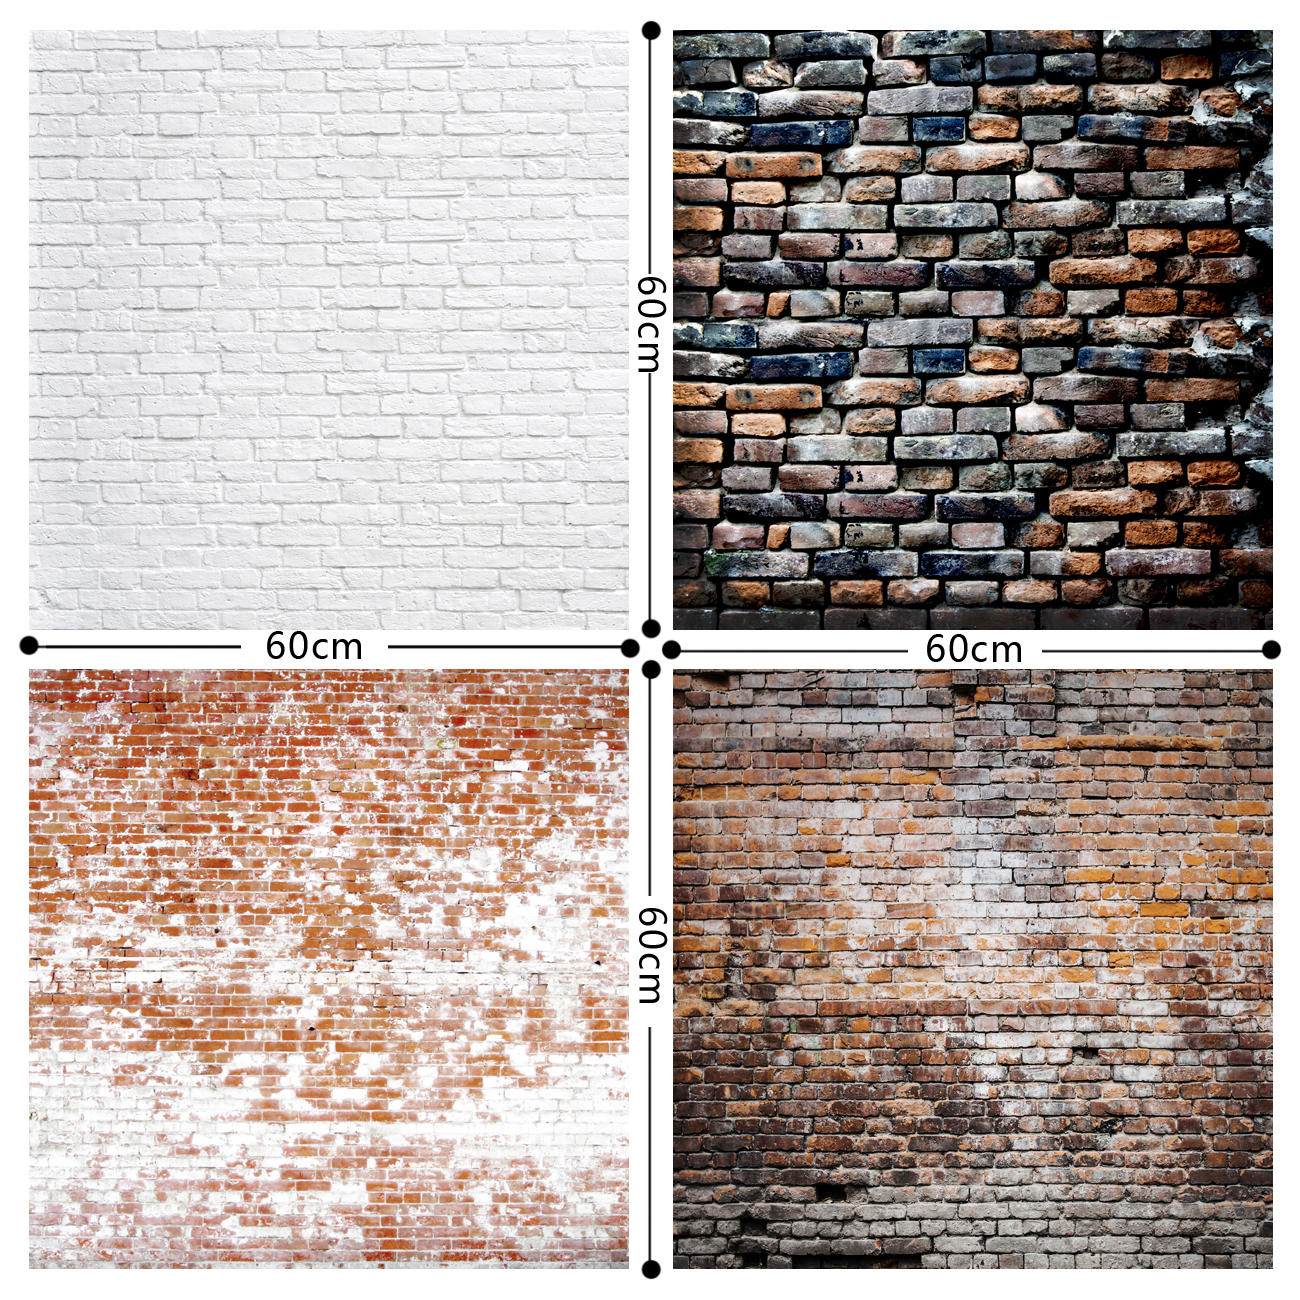 HUAYI 4pc 2x2ft wood floor brick wall backdrop vinyl photography backdrops photo props background Small object shooting GY-019 retro background brick wall photo studio props vinyl vintage photography backdrops wooden floor 7x5ft jieqx050